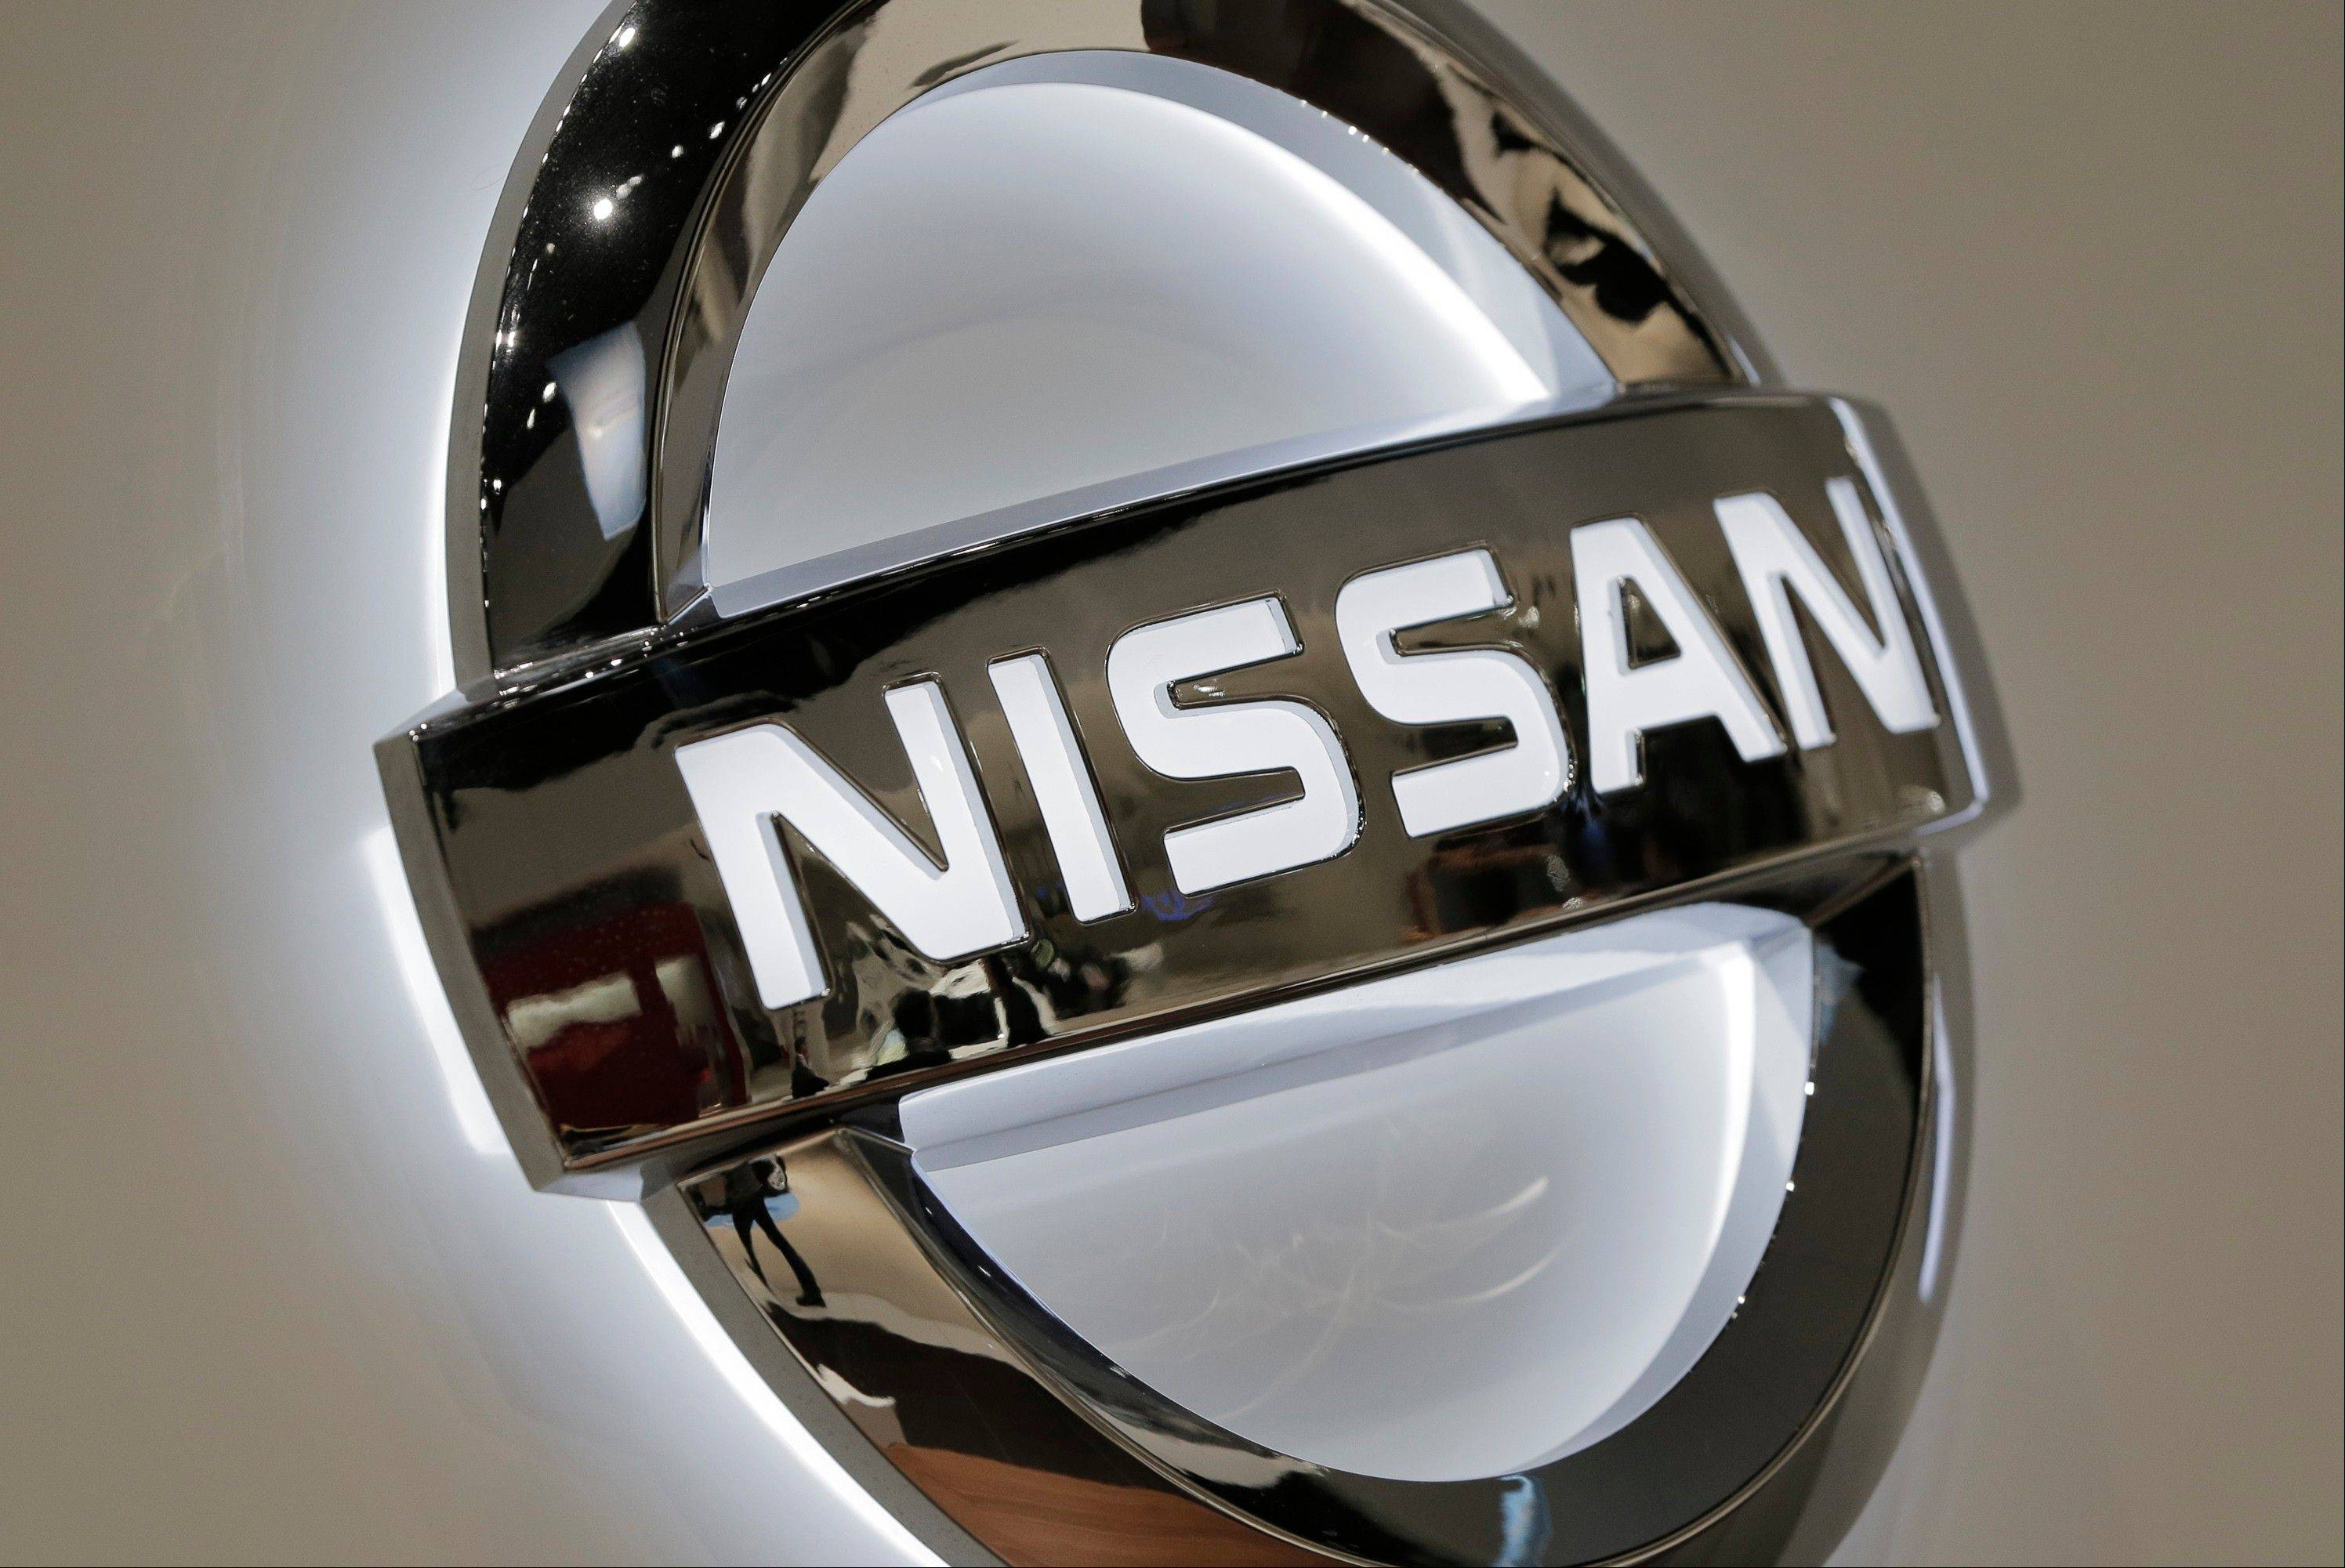 Nissan wants to be a leader in the move to make cars safer by adding electronic systems capable of preventing accidents and injuries. The systems also can reduce traffic jams by rerouting vehicles, which helps curb emissions of carbon dioxide.